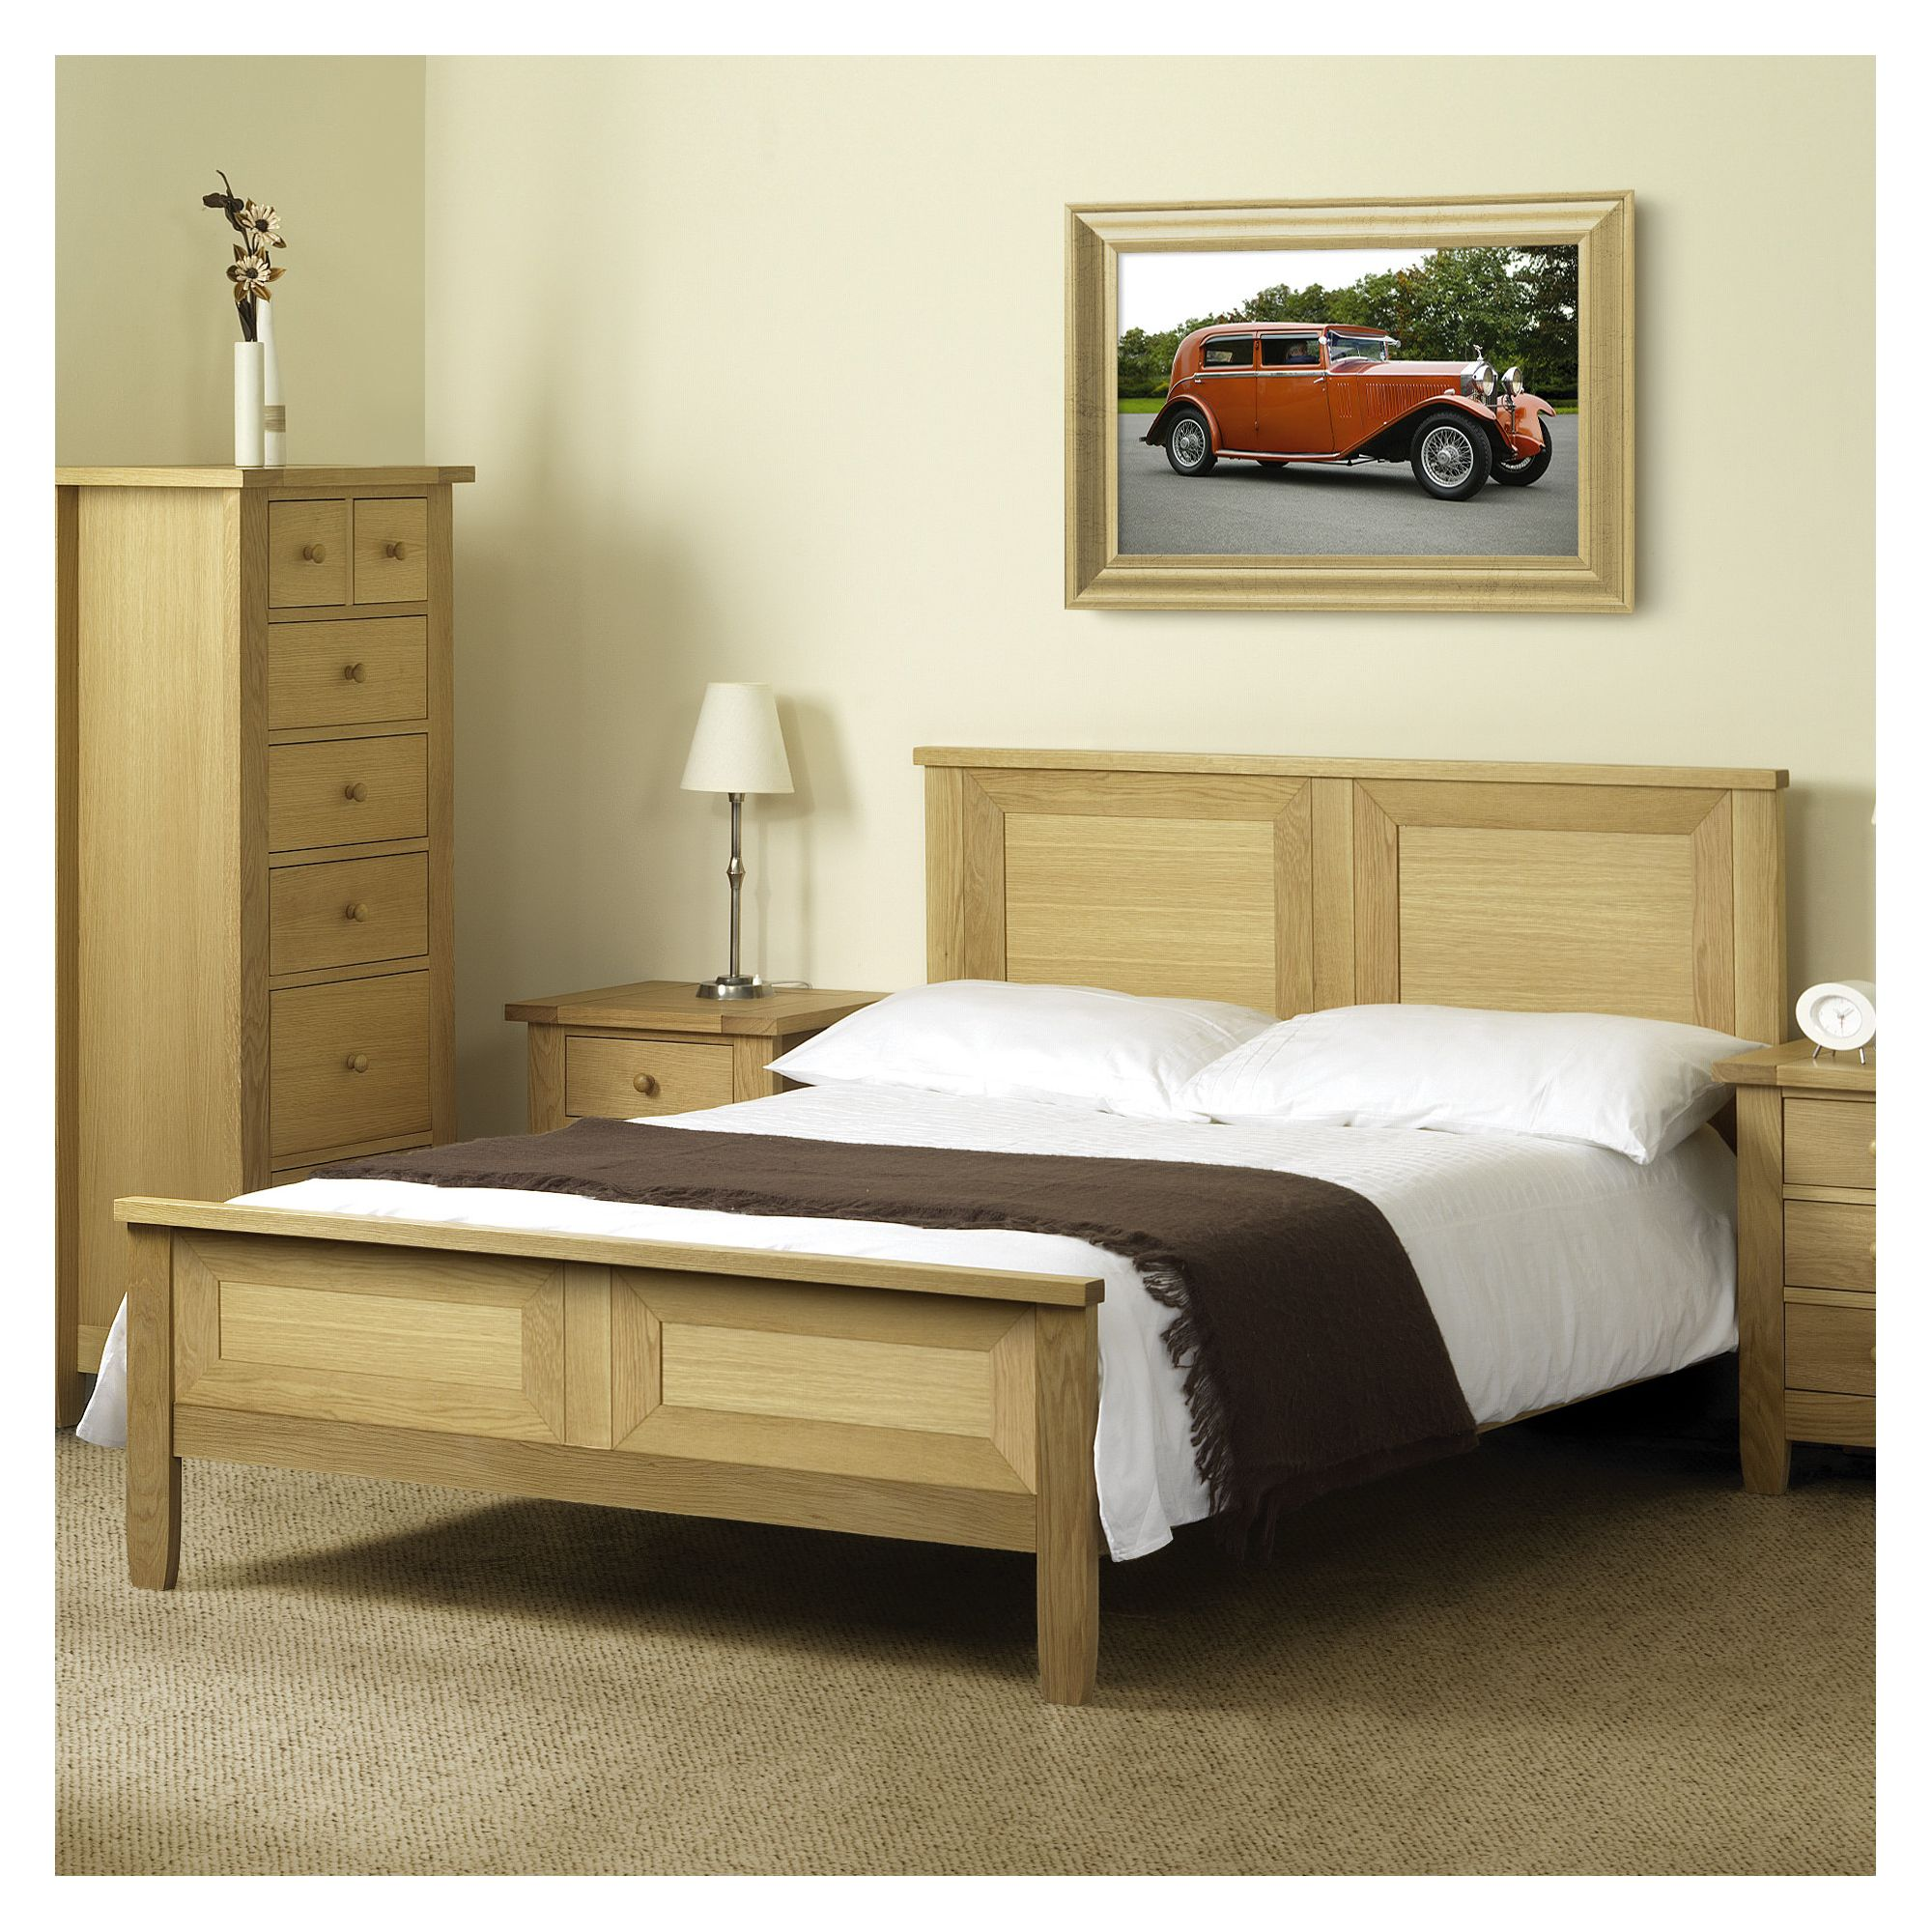 Home and garden furniture julian bowen lyndhurst bed frame kingsize special offers American home furniture bed frames